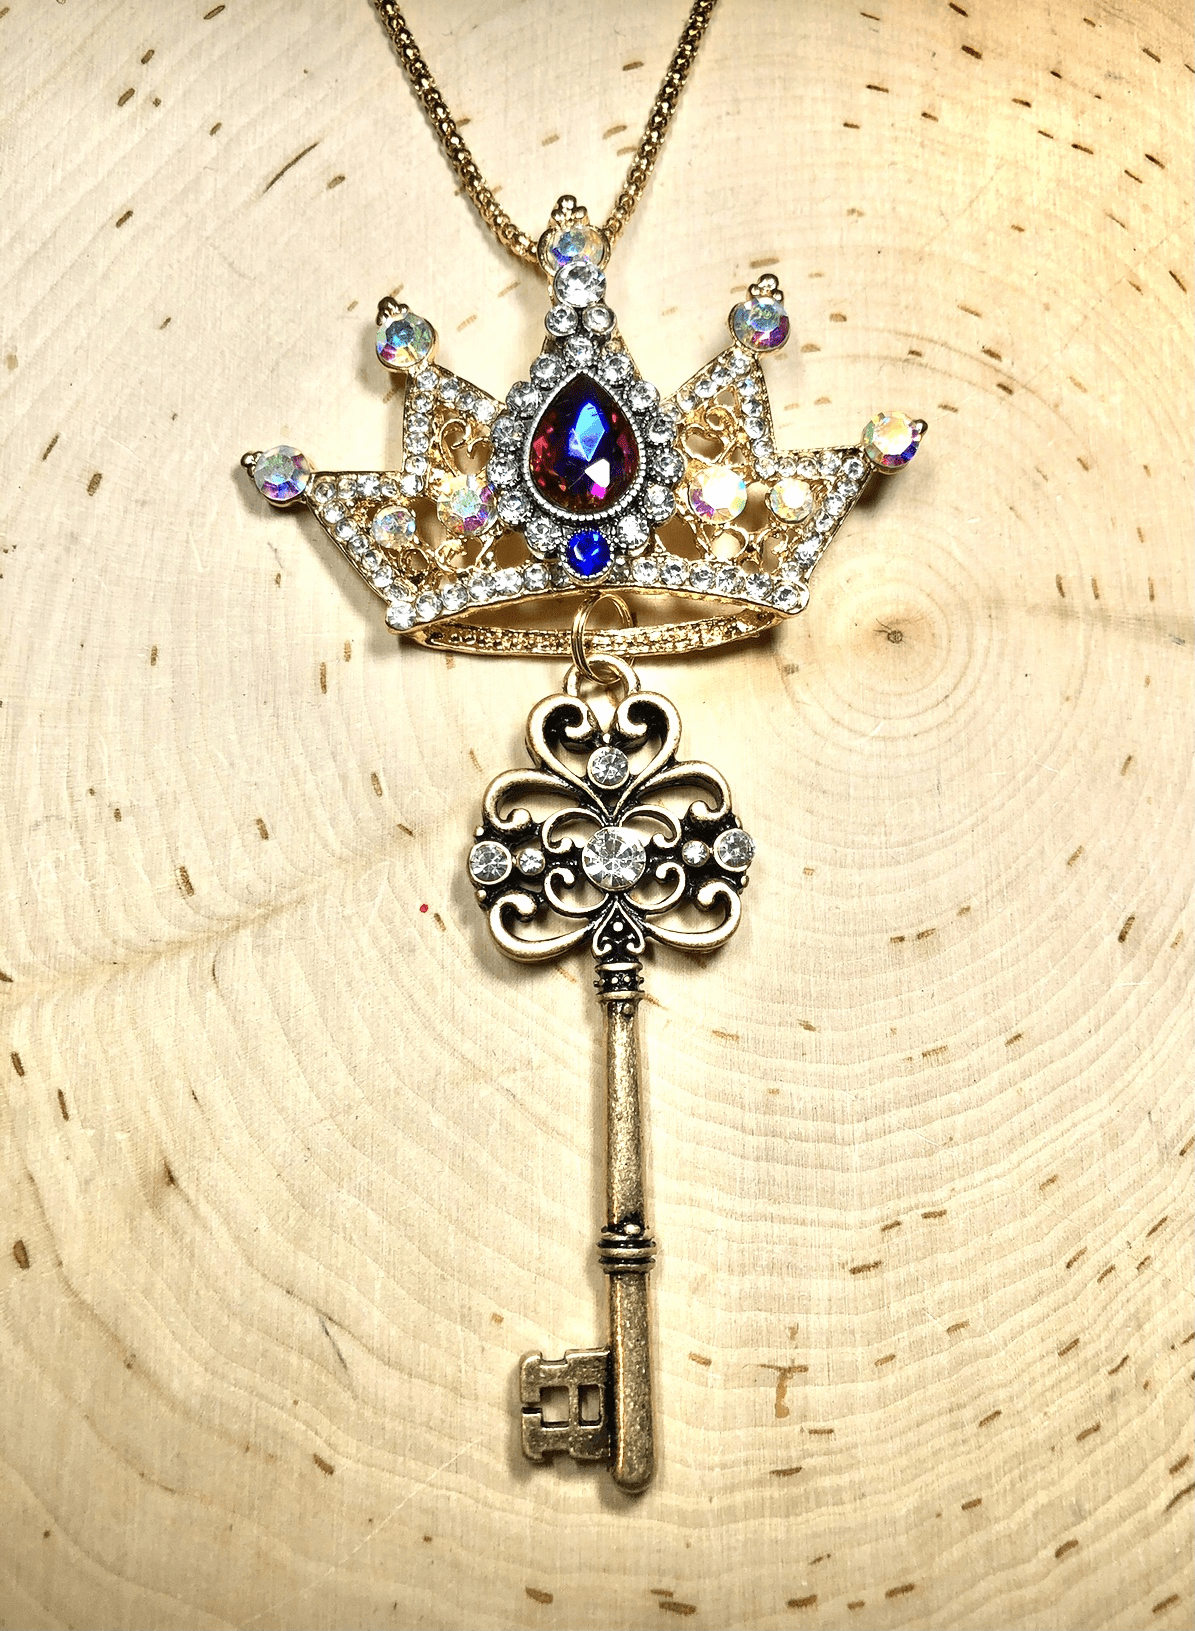 Queen Esther's Crown from the King! Necklace